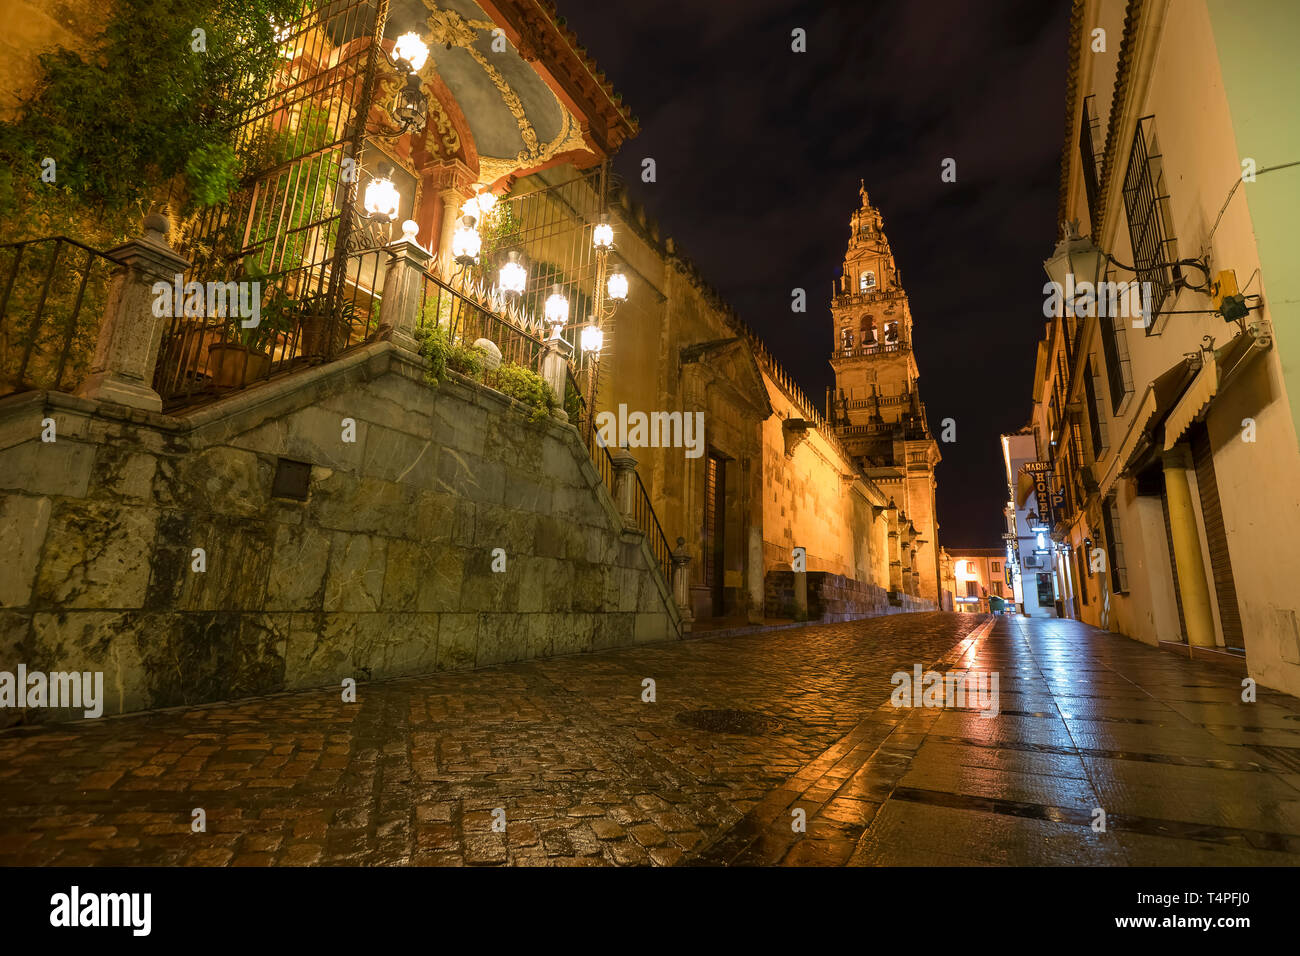 Bell Tower of the Mosque–Cathedral of Córdoba. Image taken from Calle Cardenal Herrero and Calle Céspedes. - Stock Image